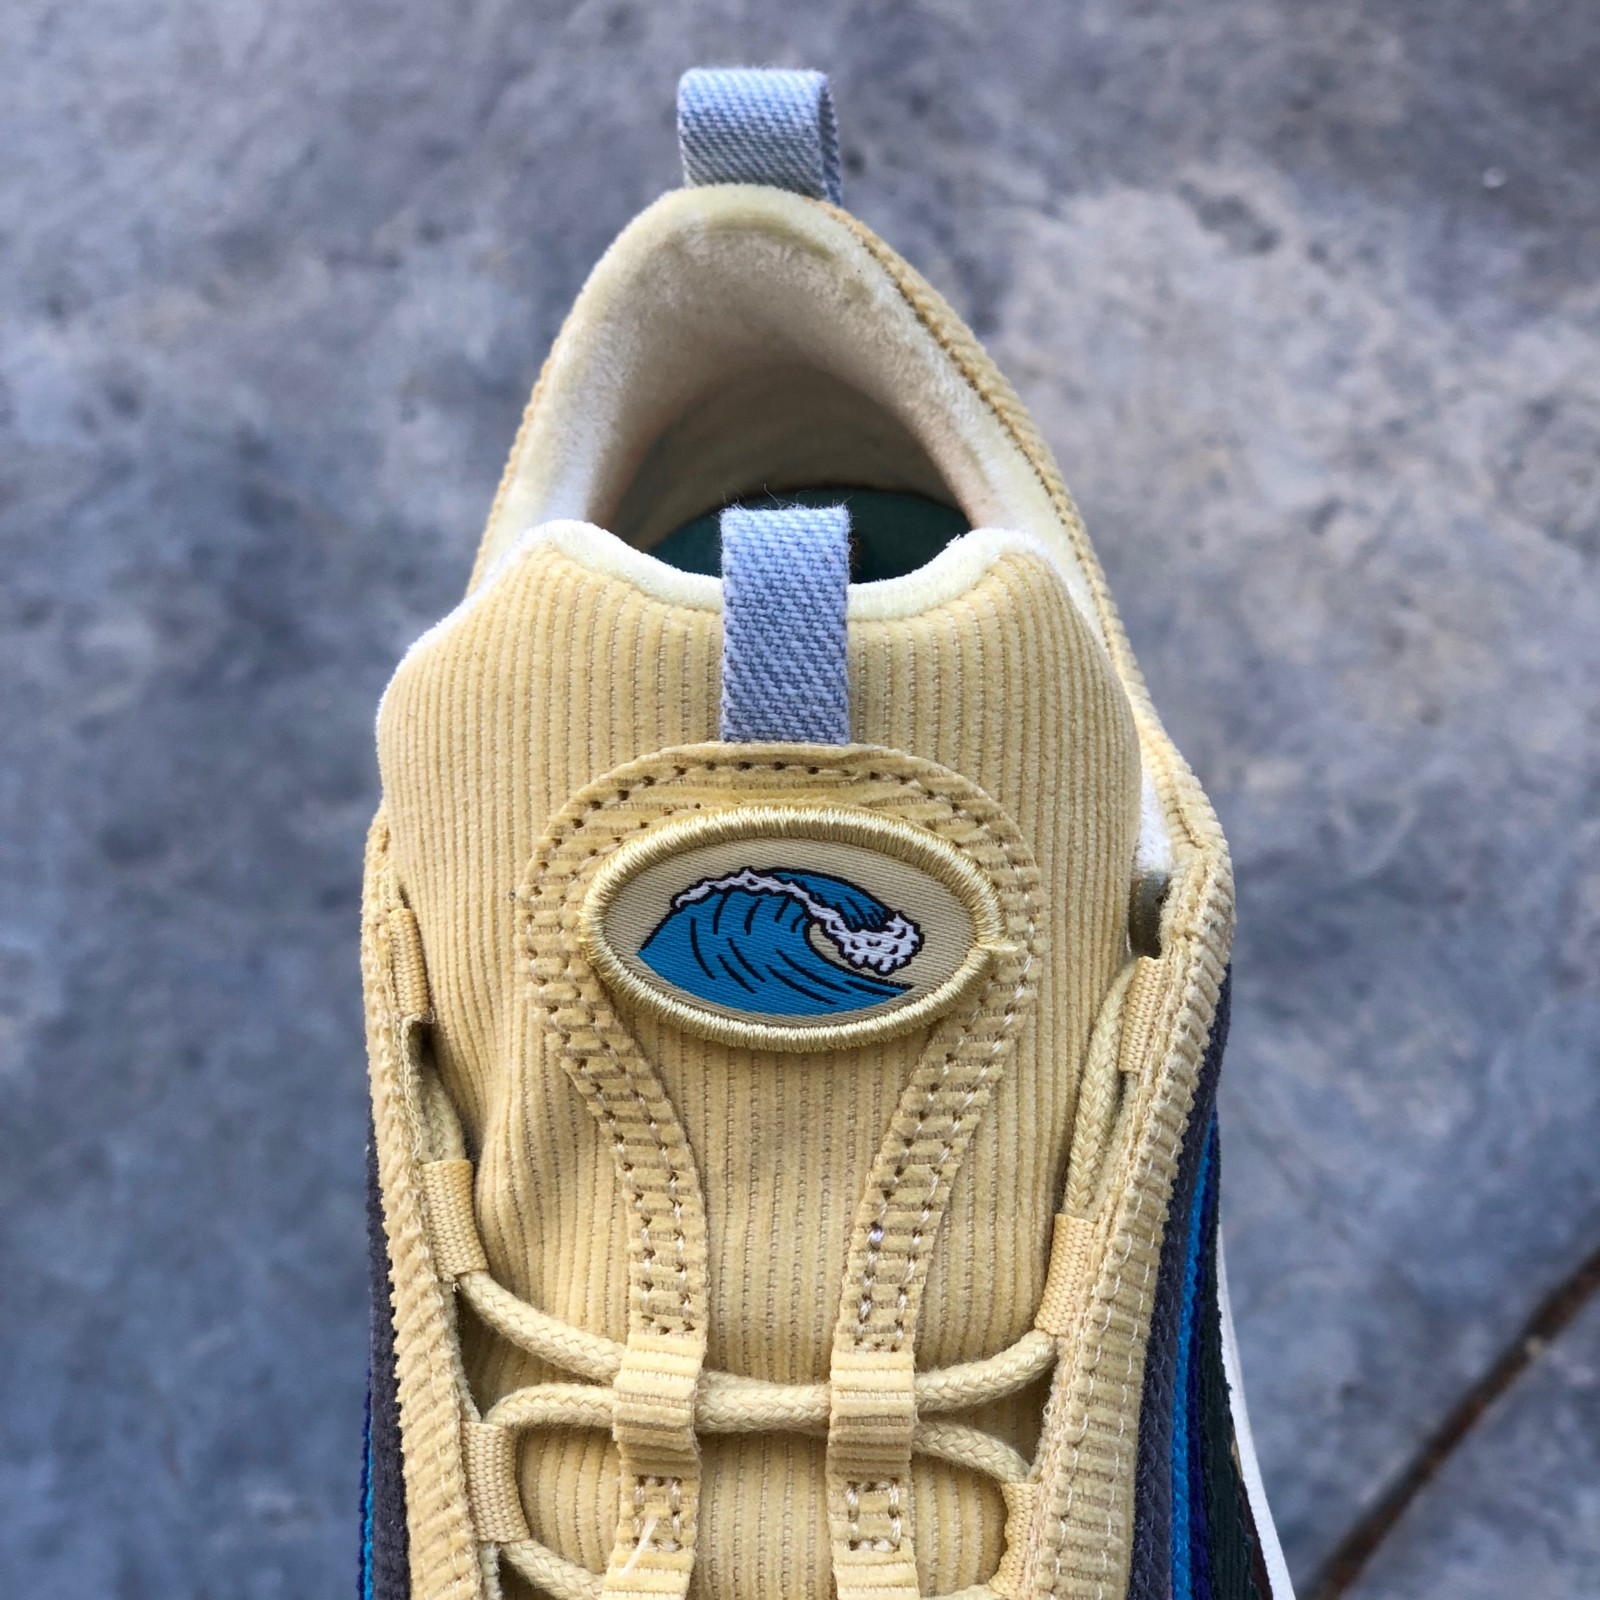 16cc957869 The velcro tongue tab of the shoe is colored in yellow and also made with  corduroy. The photo shows the iconic Air Max 97's hidden lace system and  the ...